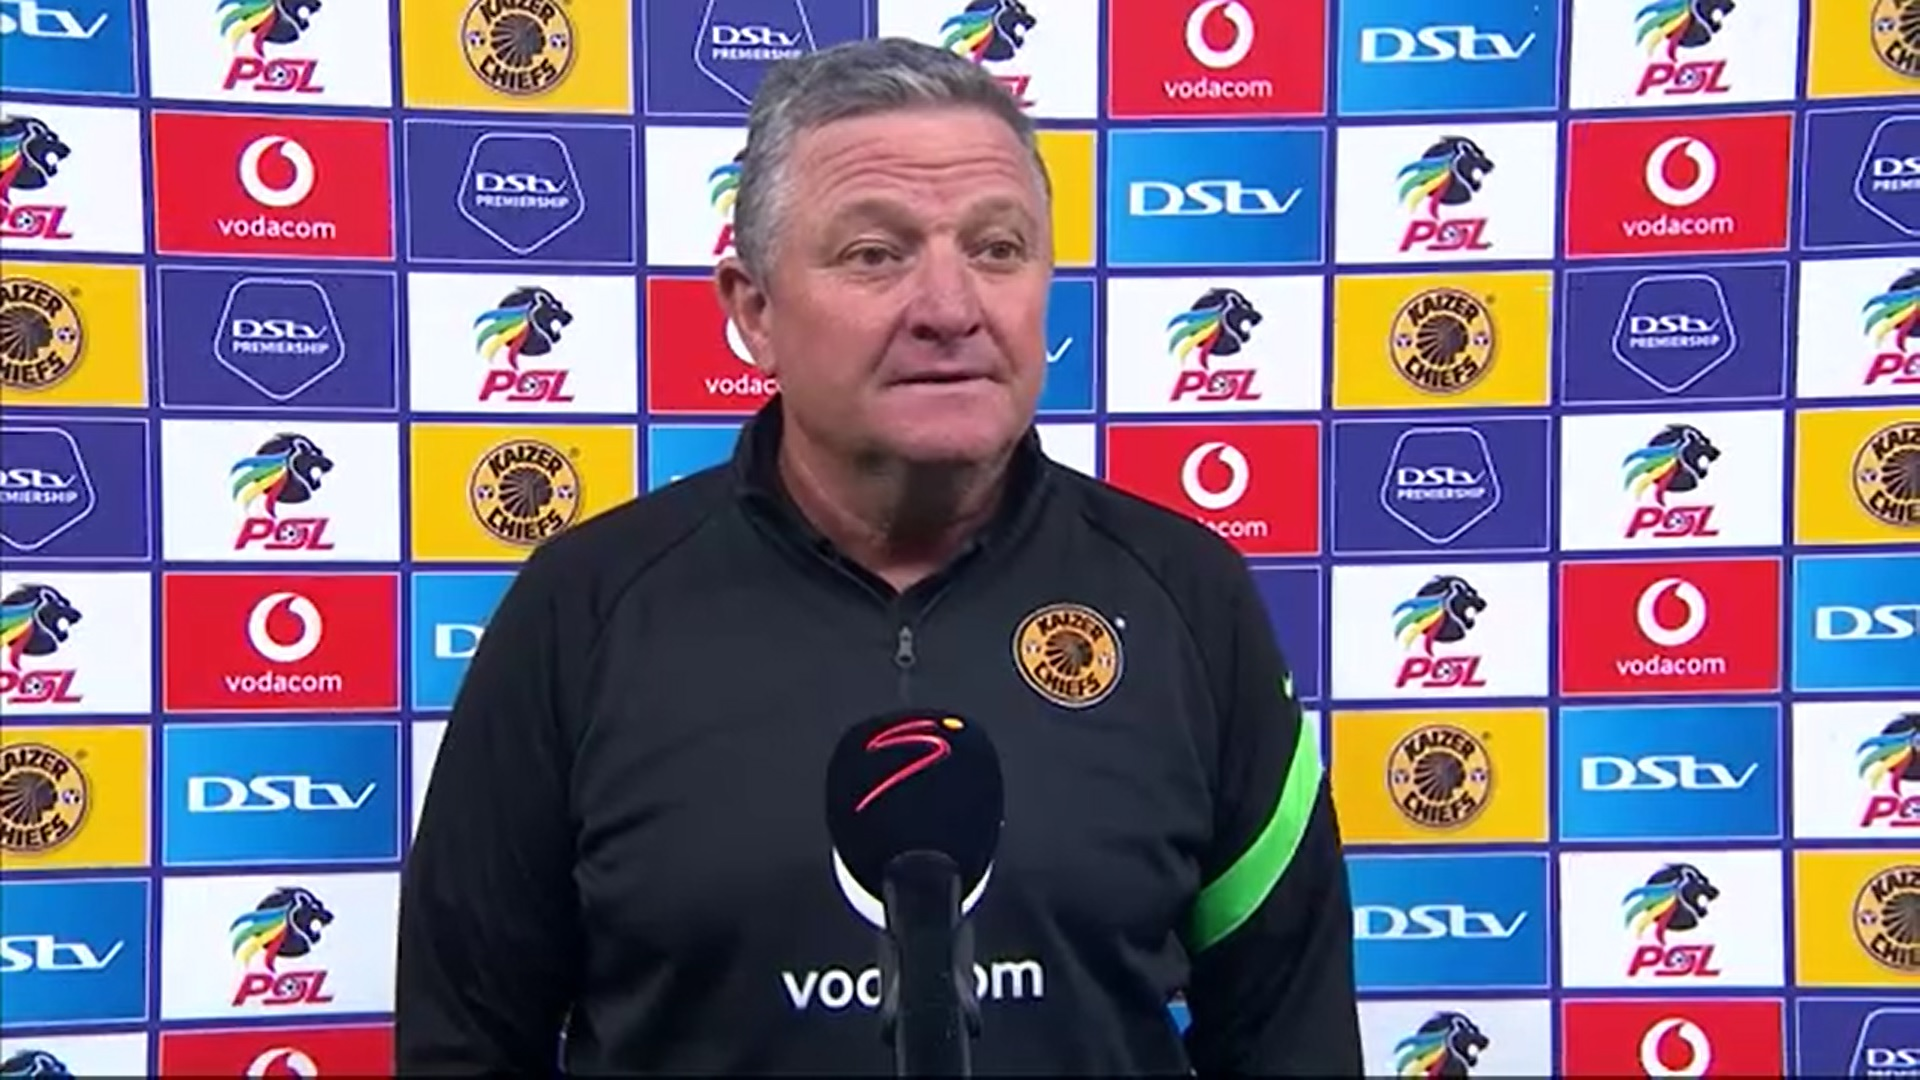 DStv Premiership | Kaizer Chiefs v Swallows FC | Post-match interview with Gavin Hunt